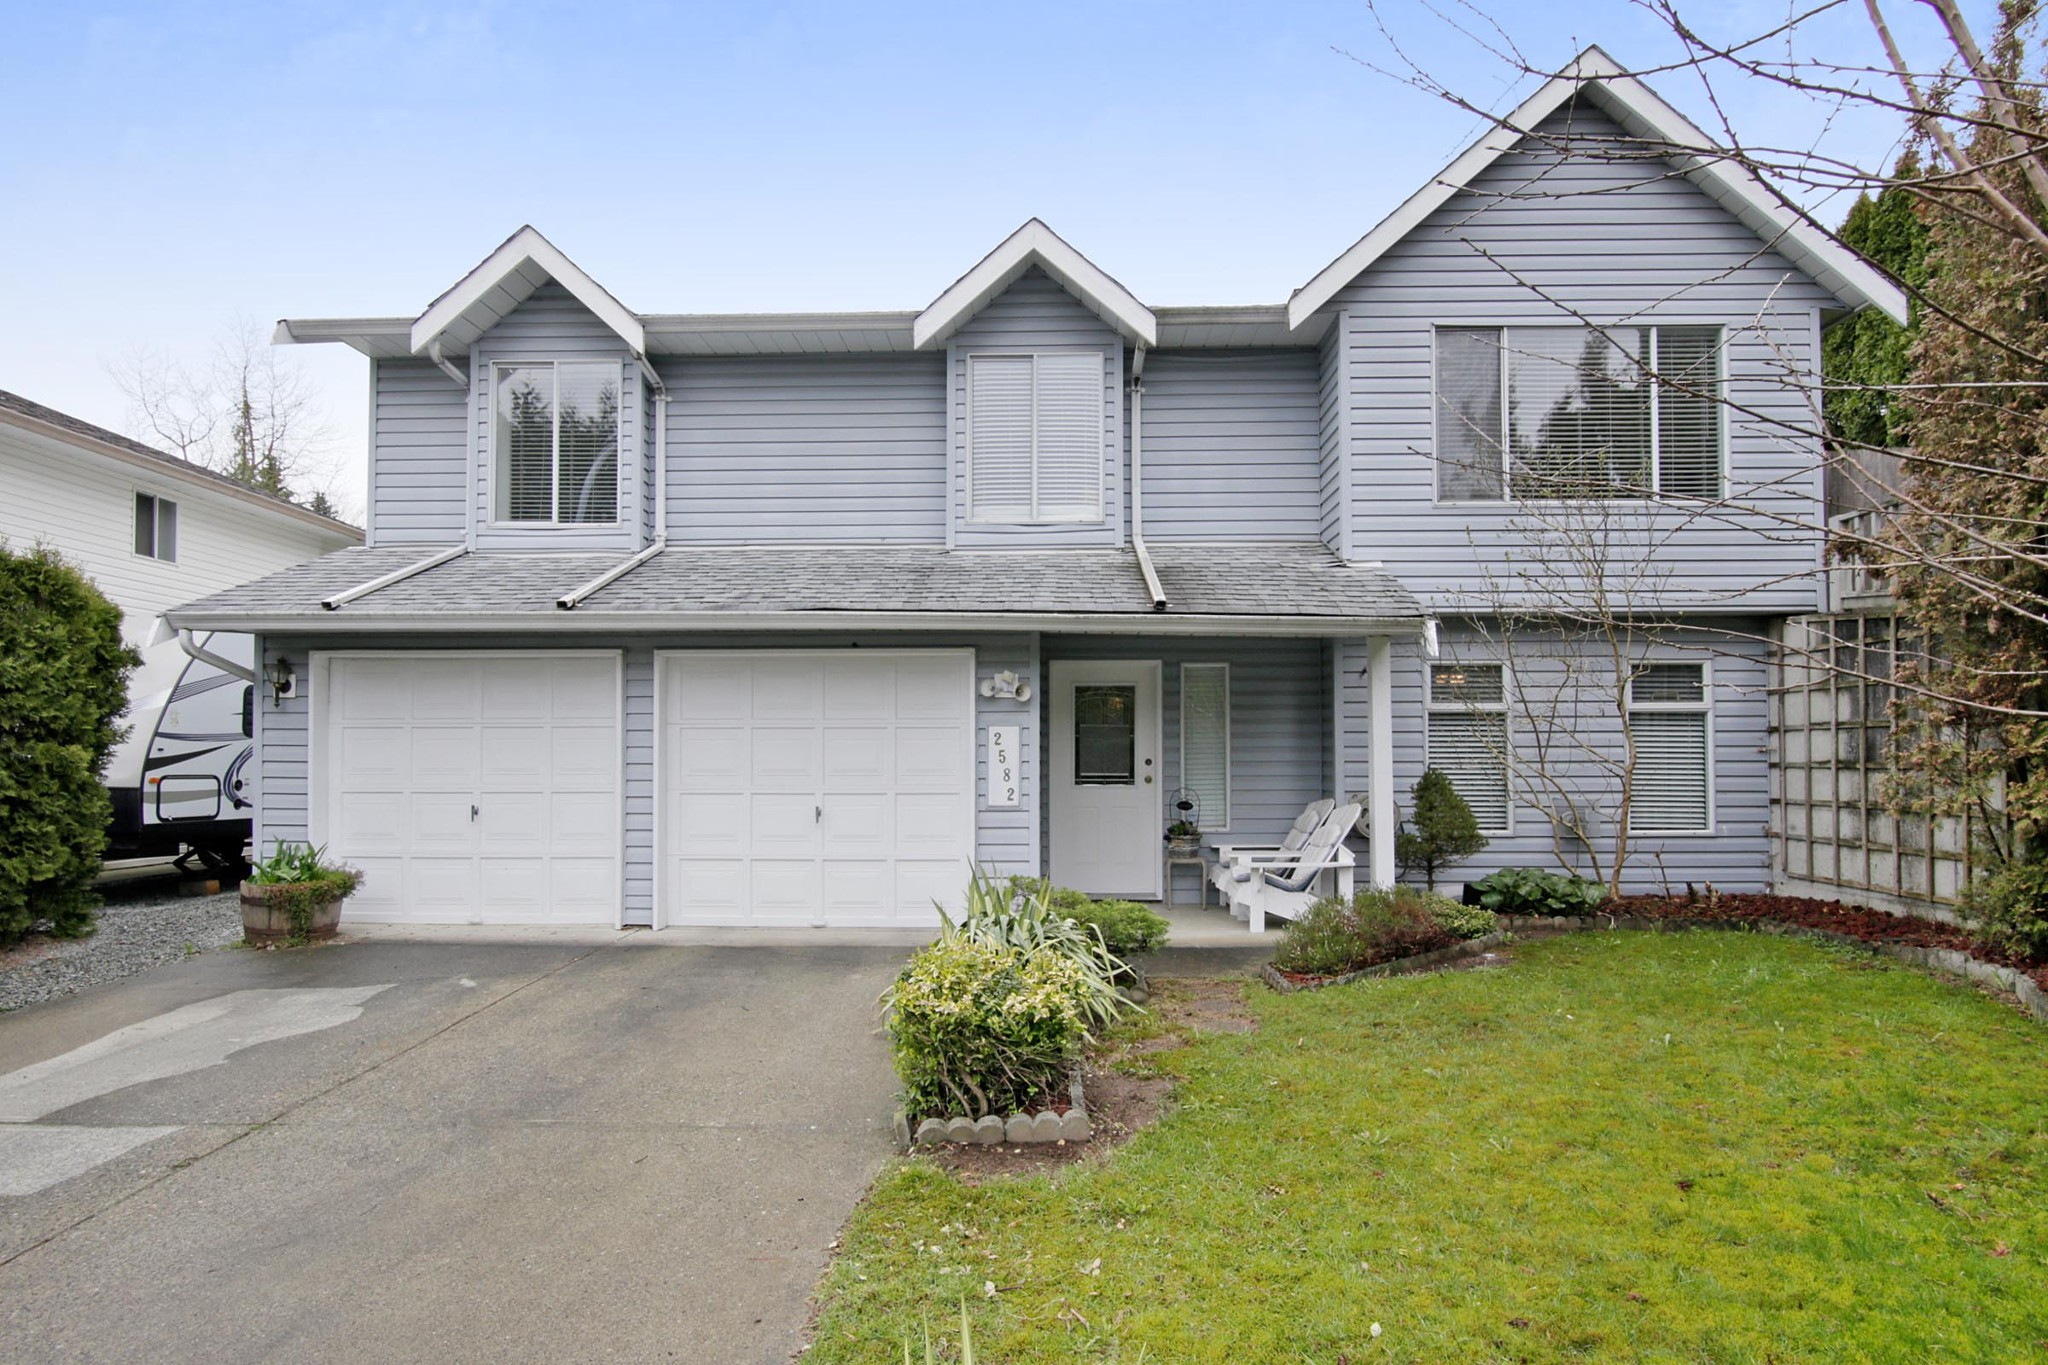 Main Photo: 2582 MITCHELL Street in Abbotsford: Abbotsford West House for sale : MLS® # R2251993